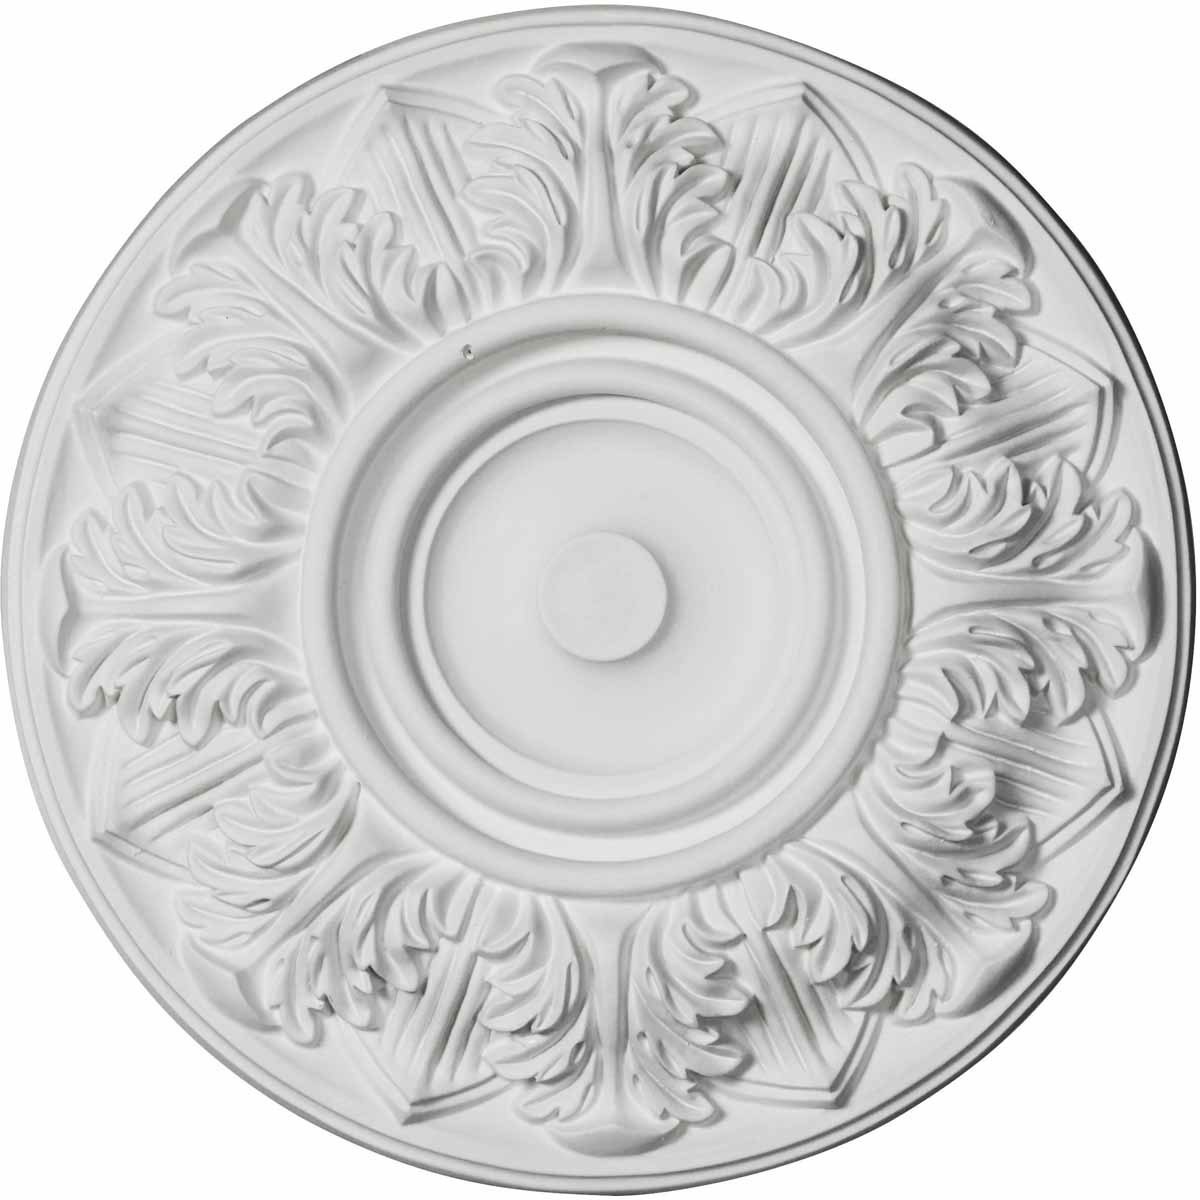 """EM-CM13WH - 13""""OD x 1 3/8""""P Whitman Ceiling Medallion (For Canopies up to 3 3/4"""")"""